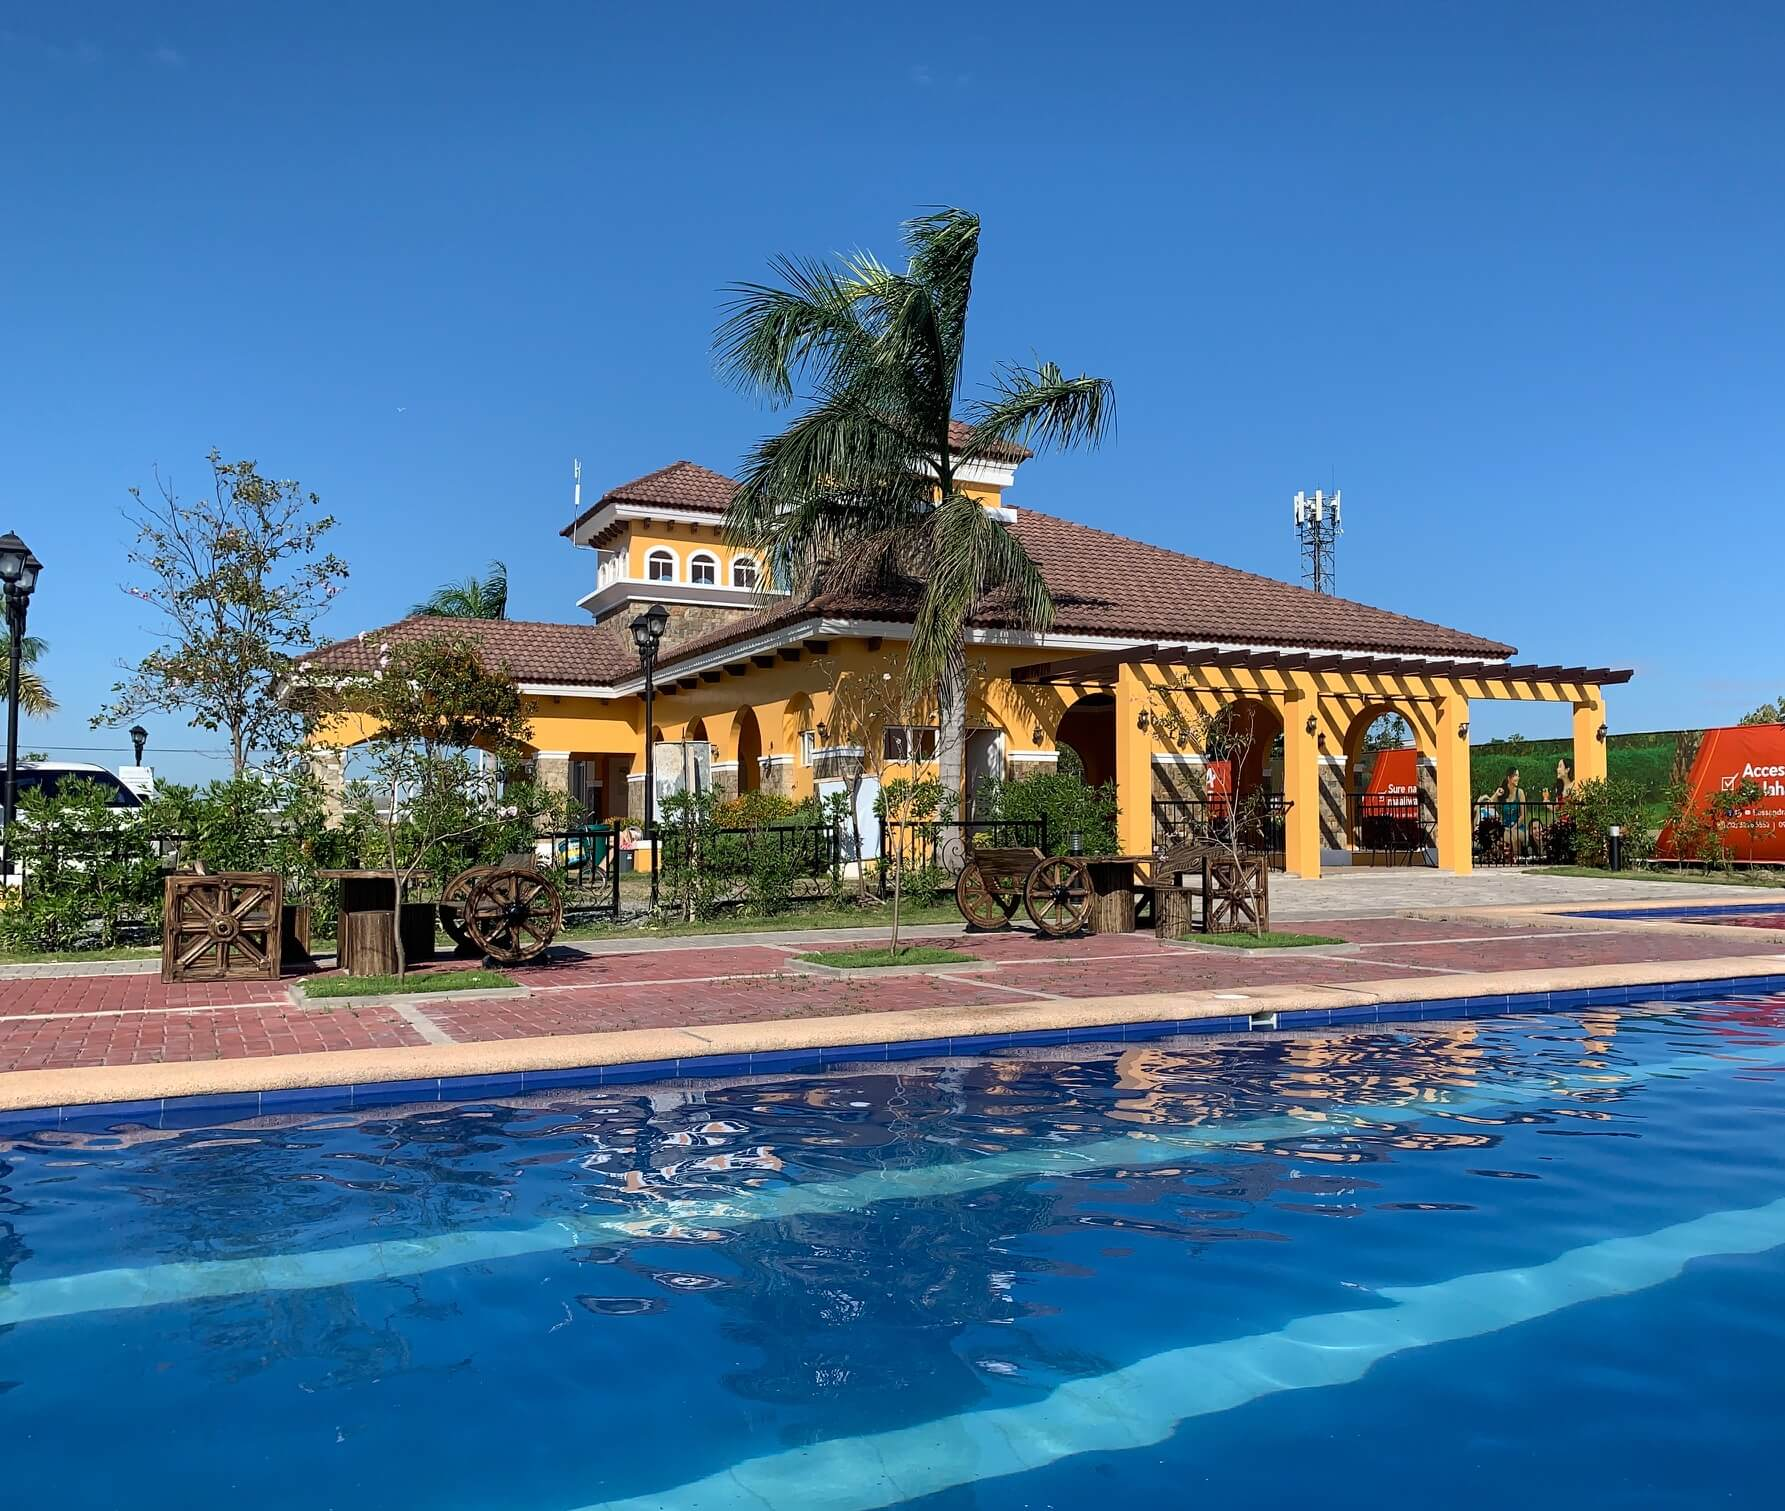 Clubhouse and Swimming pool at Lessandra Apalit in Apalit, Pampanga